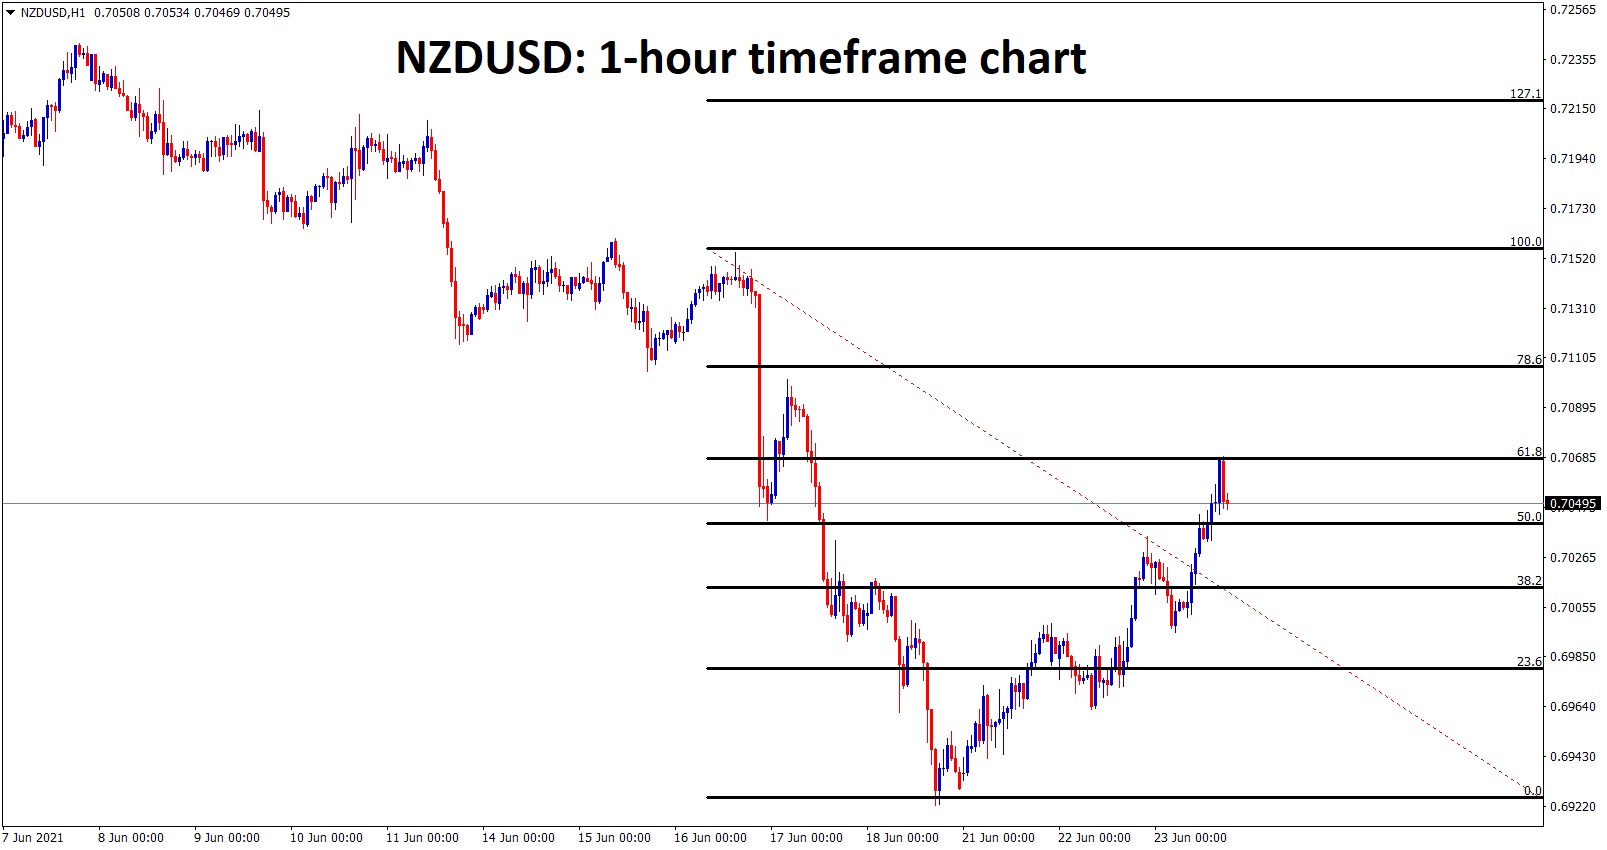 NZDUSD made a 61 correction from the last high